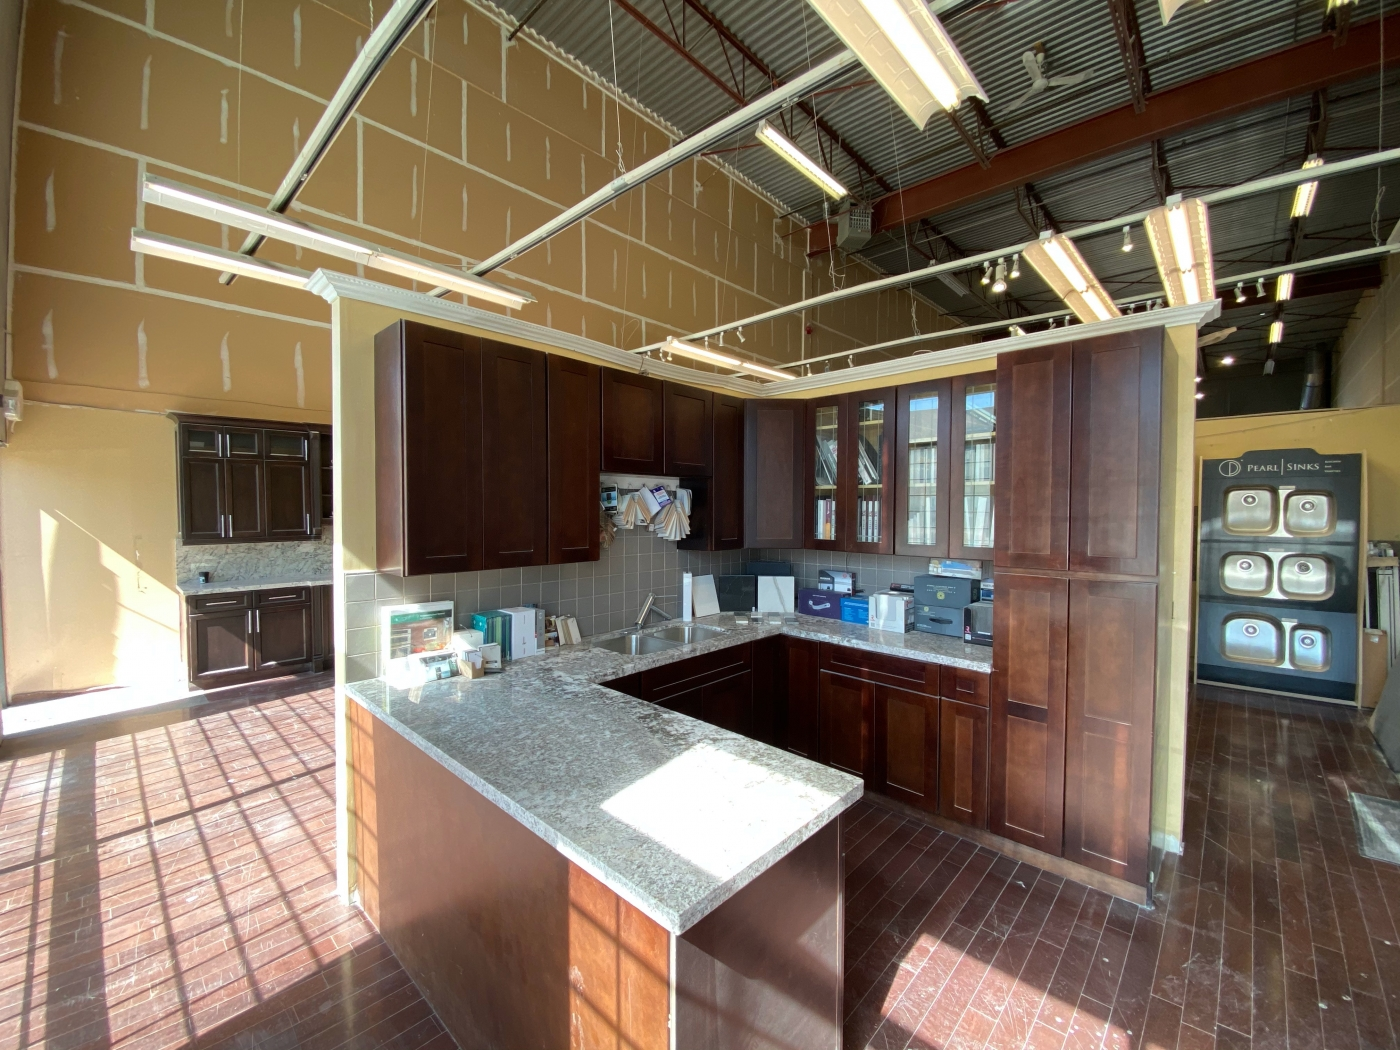 TURNKEY CABINET AND COUNTERTOP is a business for sale in BC.